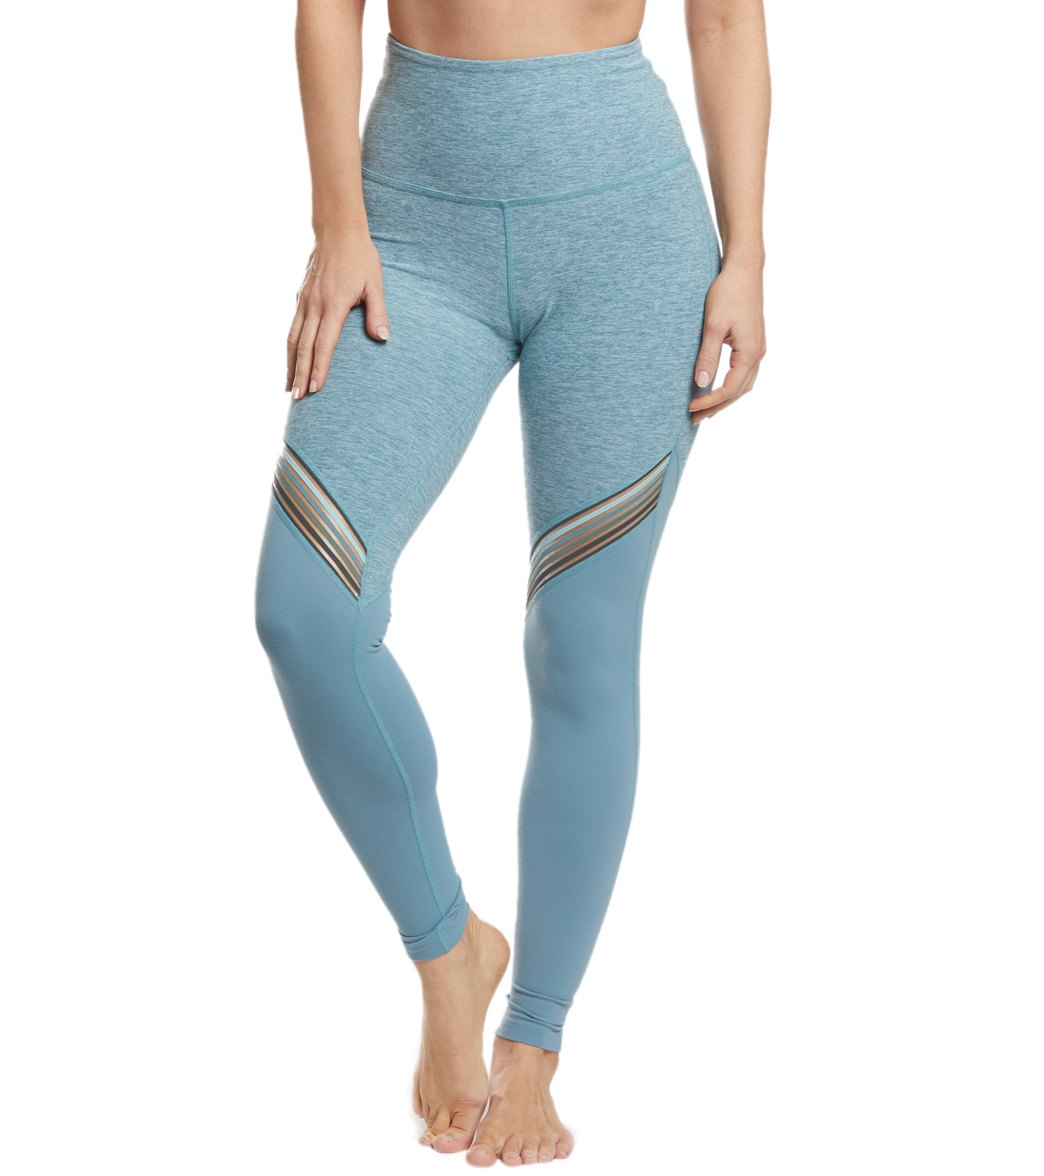 4a923910ed586b Beyond Yoga All The Filament High Waisted Long Yoga Leggings at  YogaOutlet.com - Free Shipping